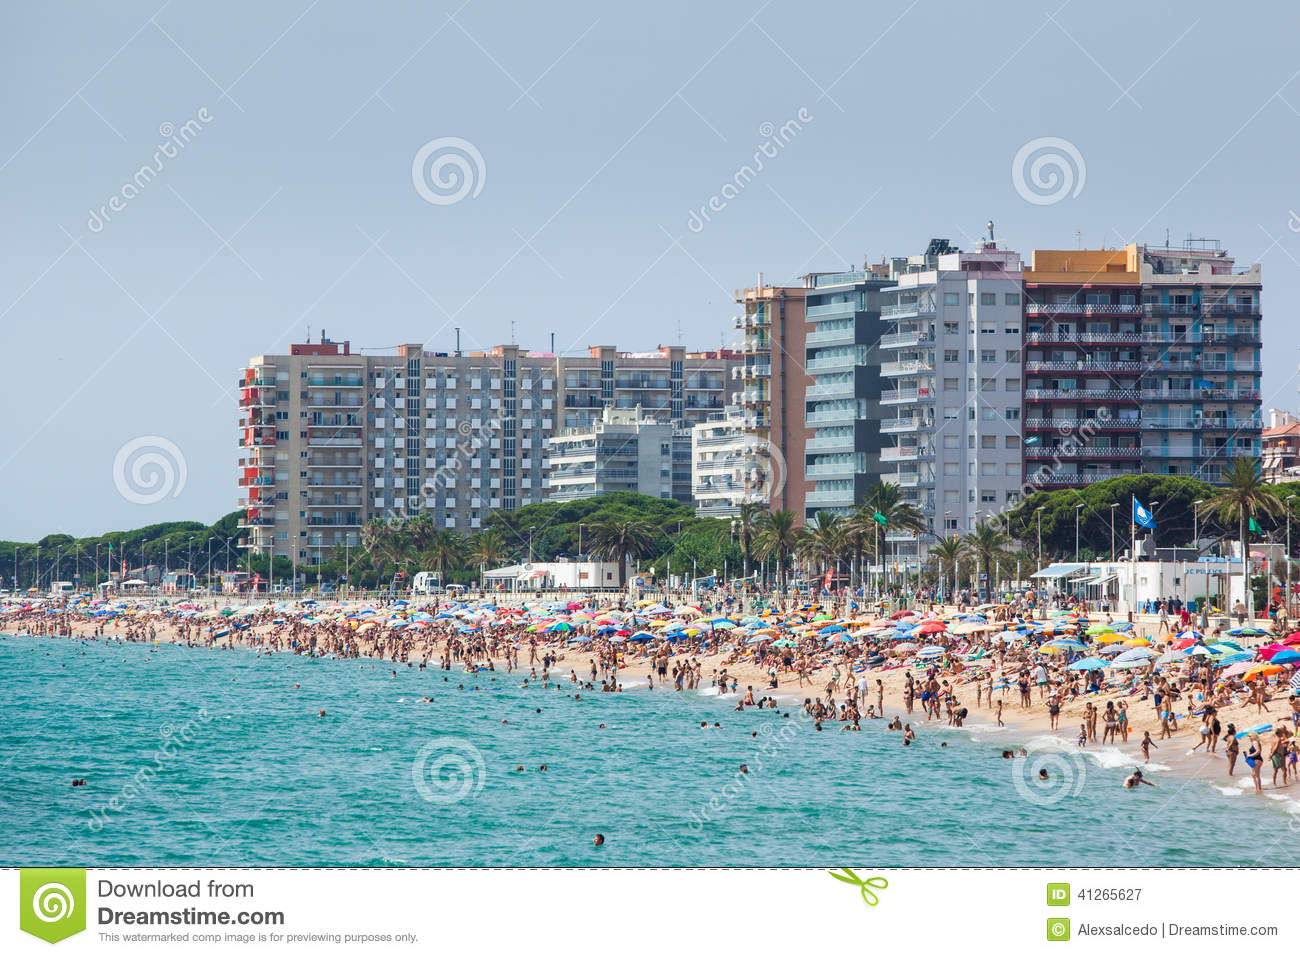 The favourite travel destination for tourists blanes july 26 2012